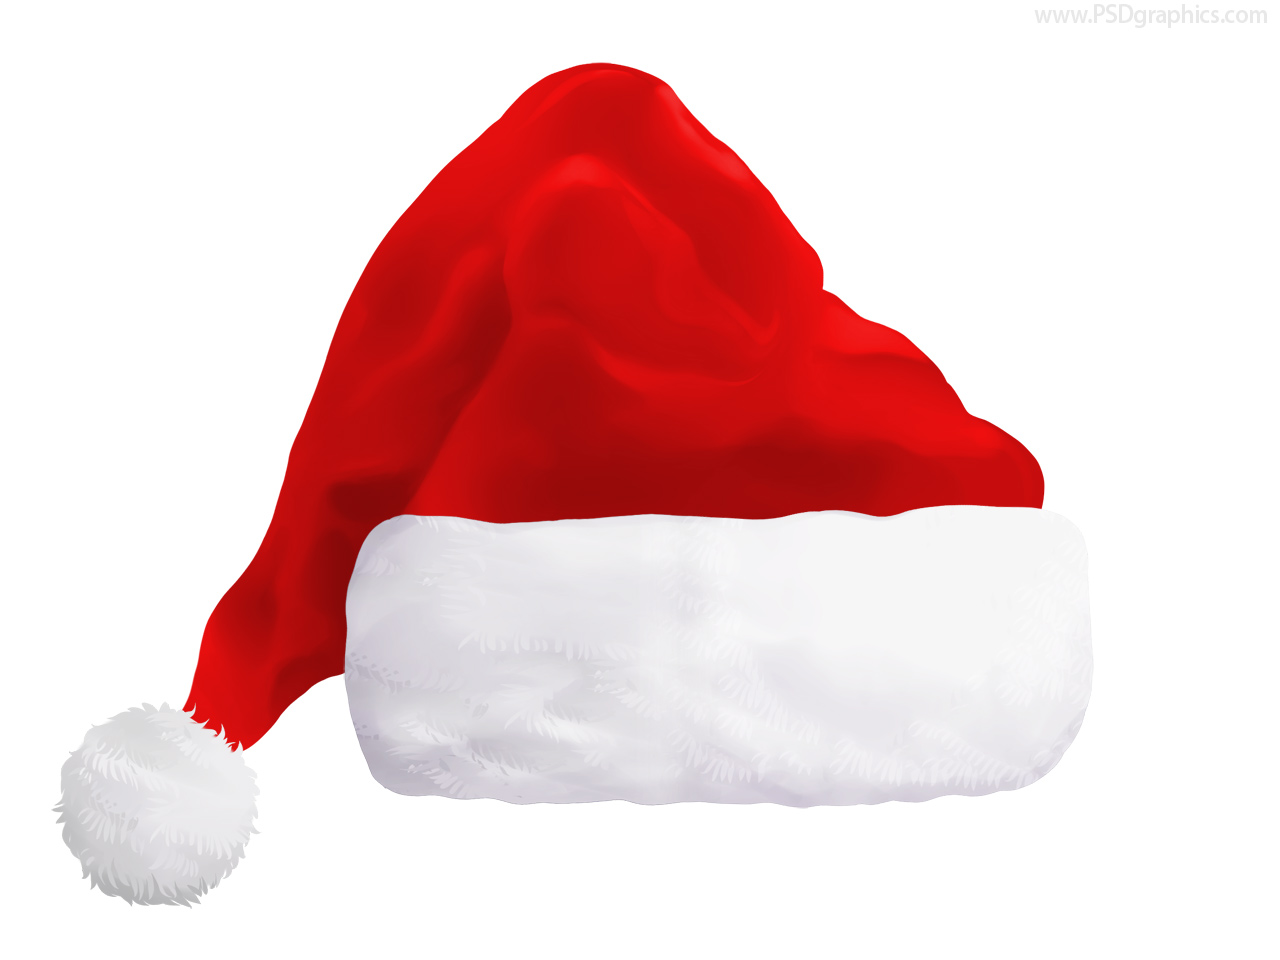 Red Santa hat (PSD) | PSDGraphics